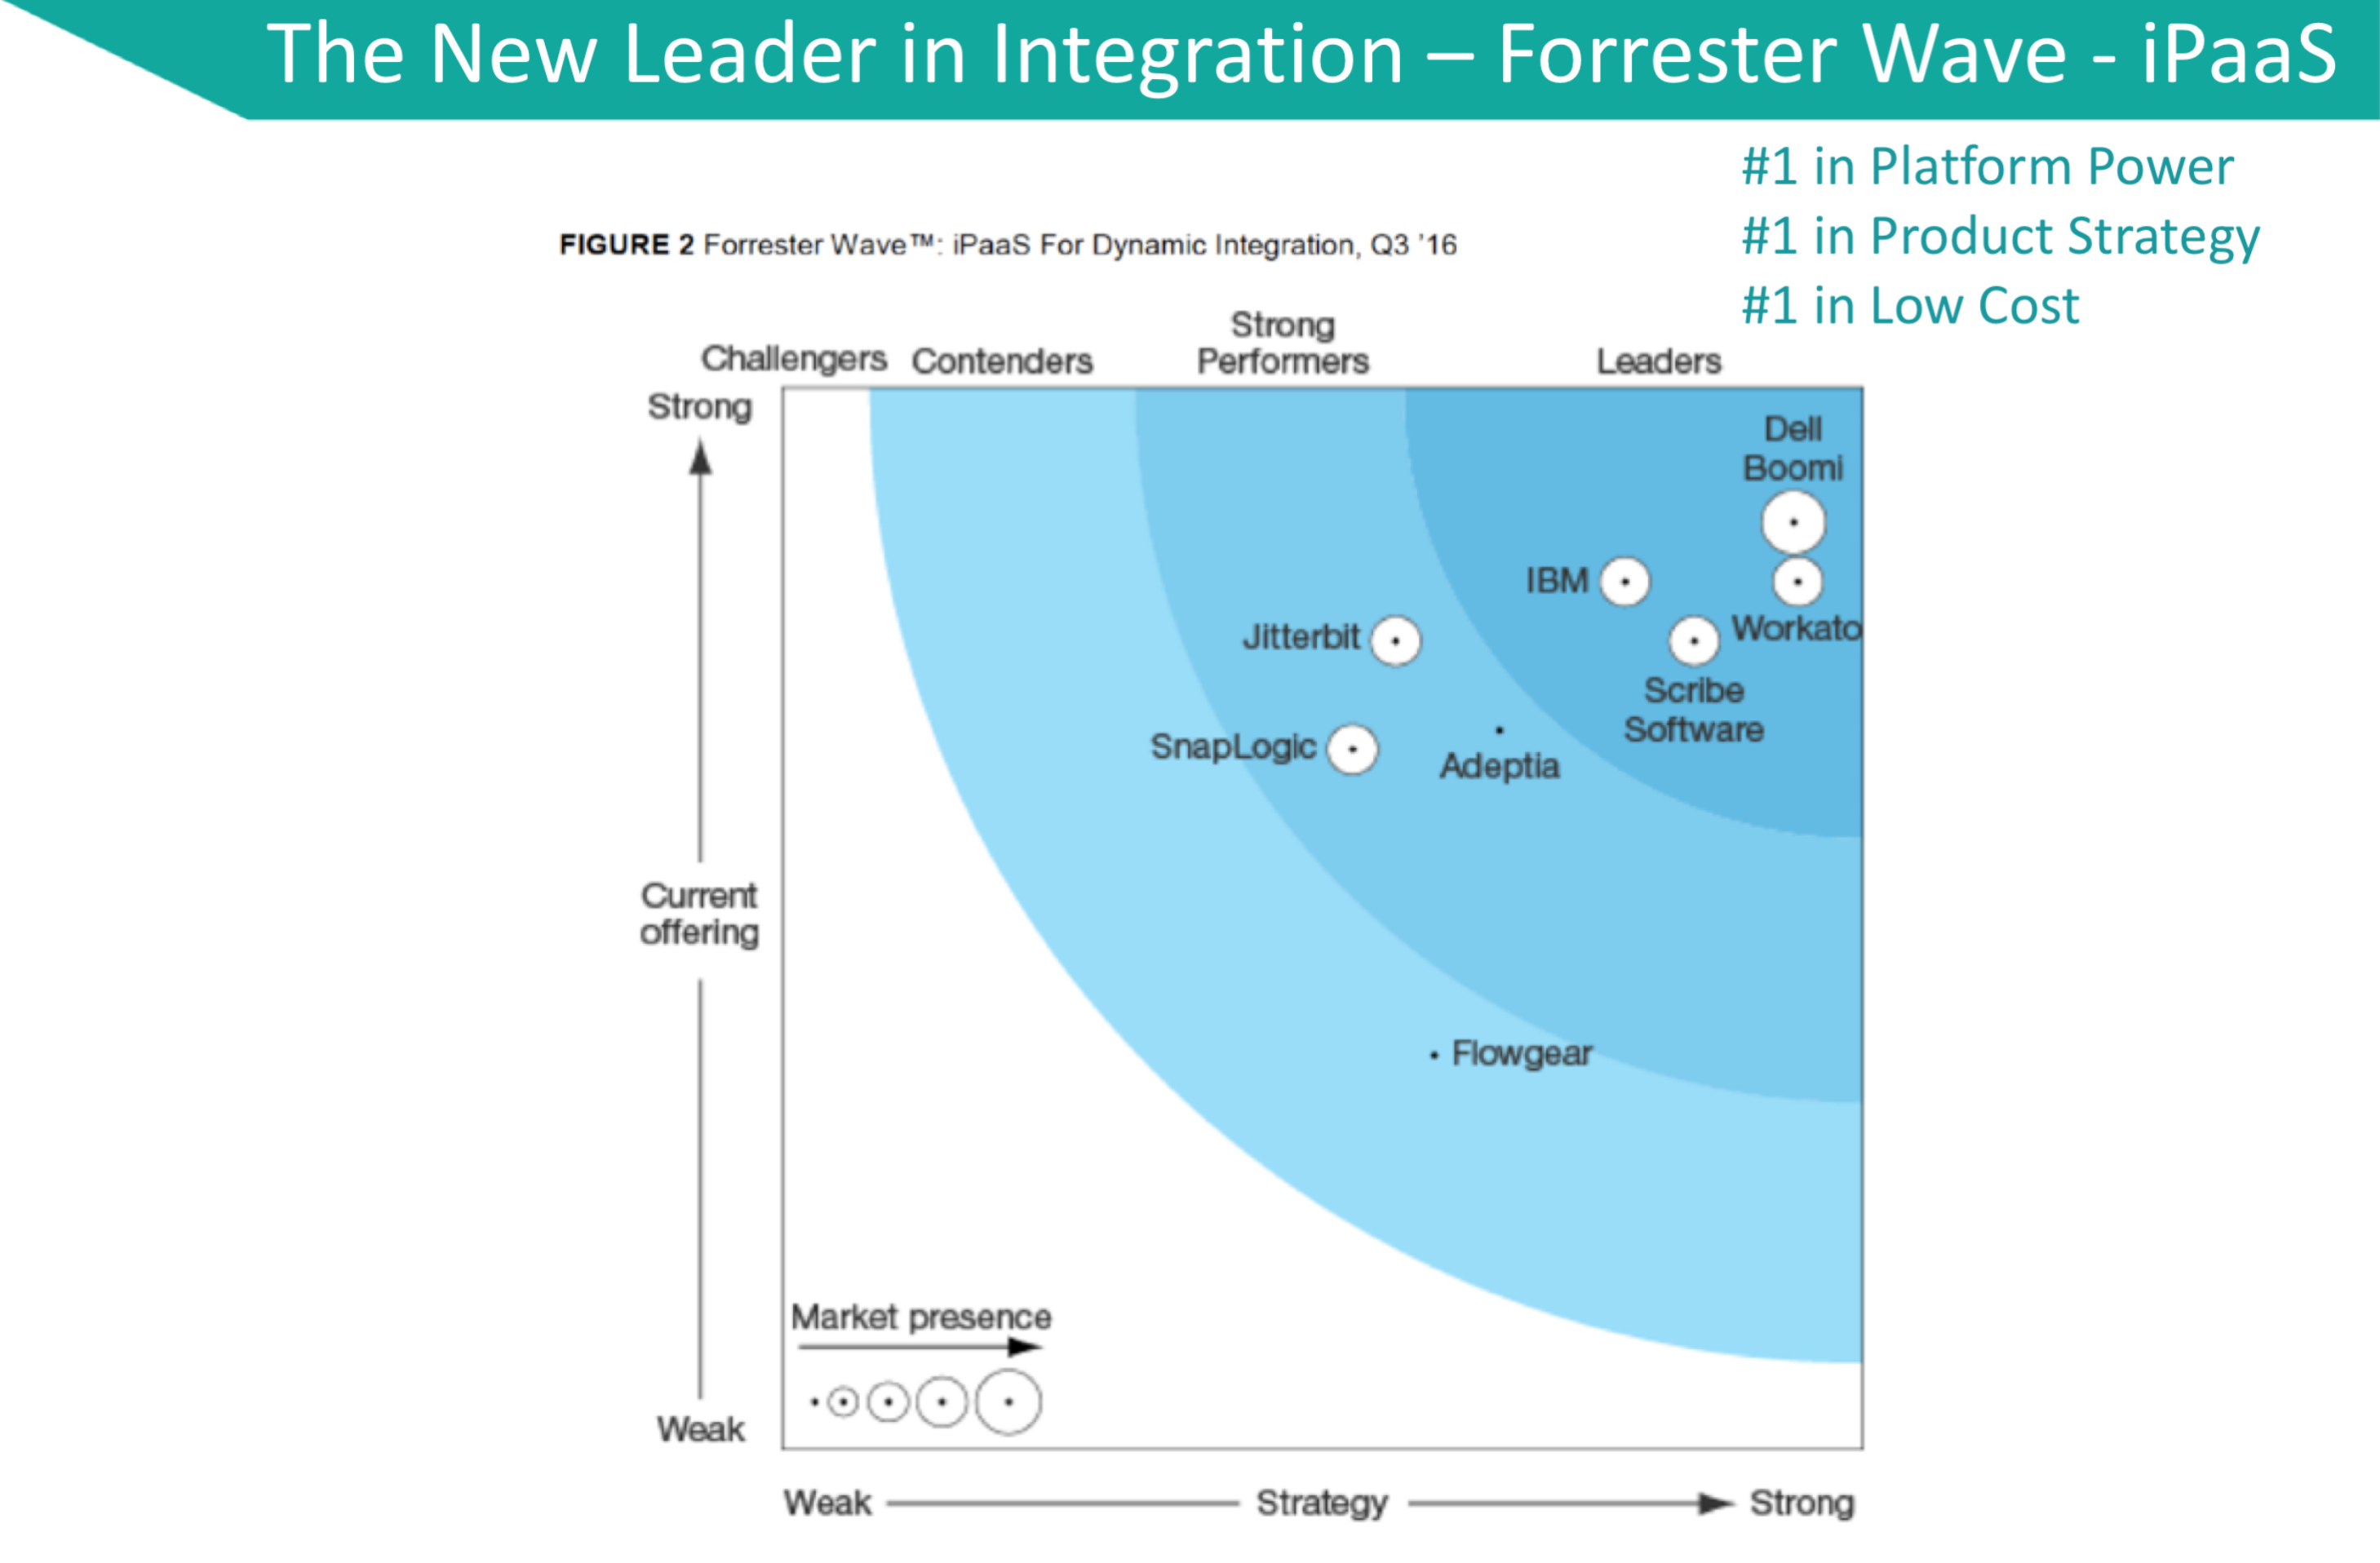 Workato Demo - The New Leader in Integration – Forrester Wave - iPaaS